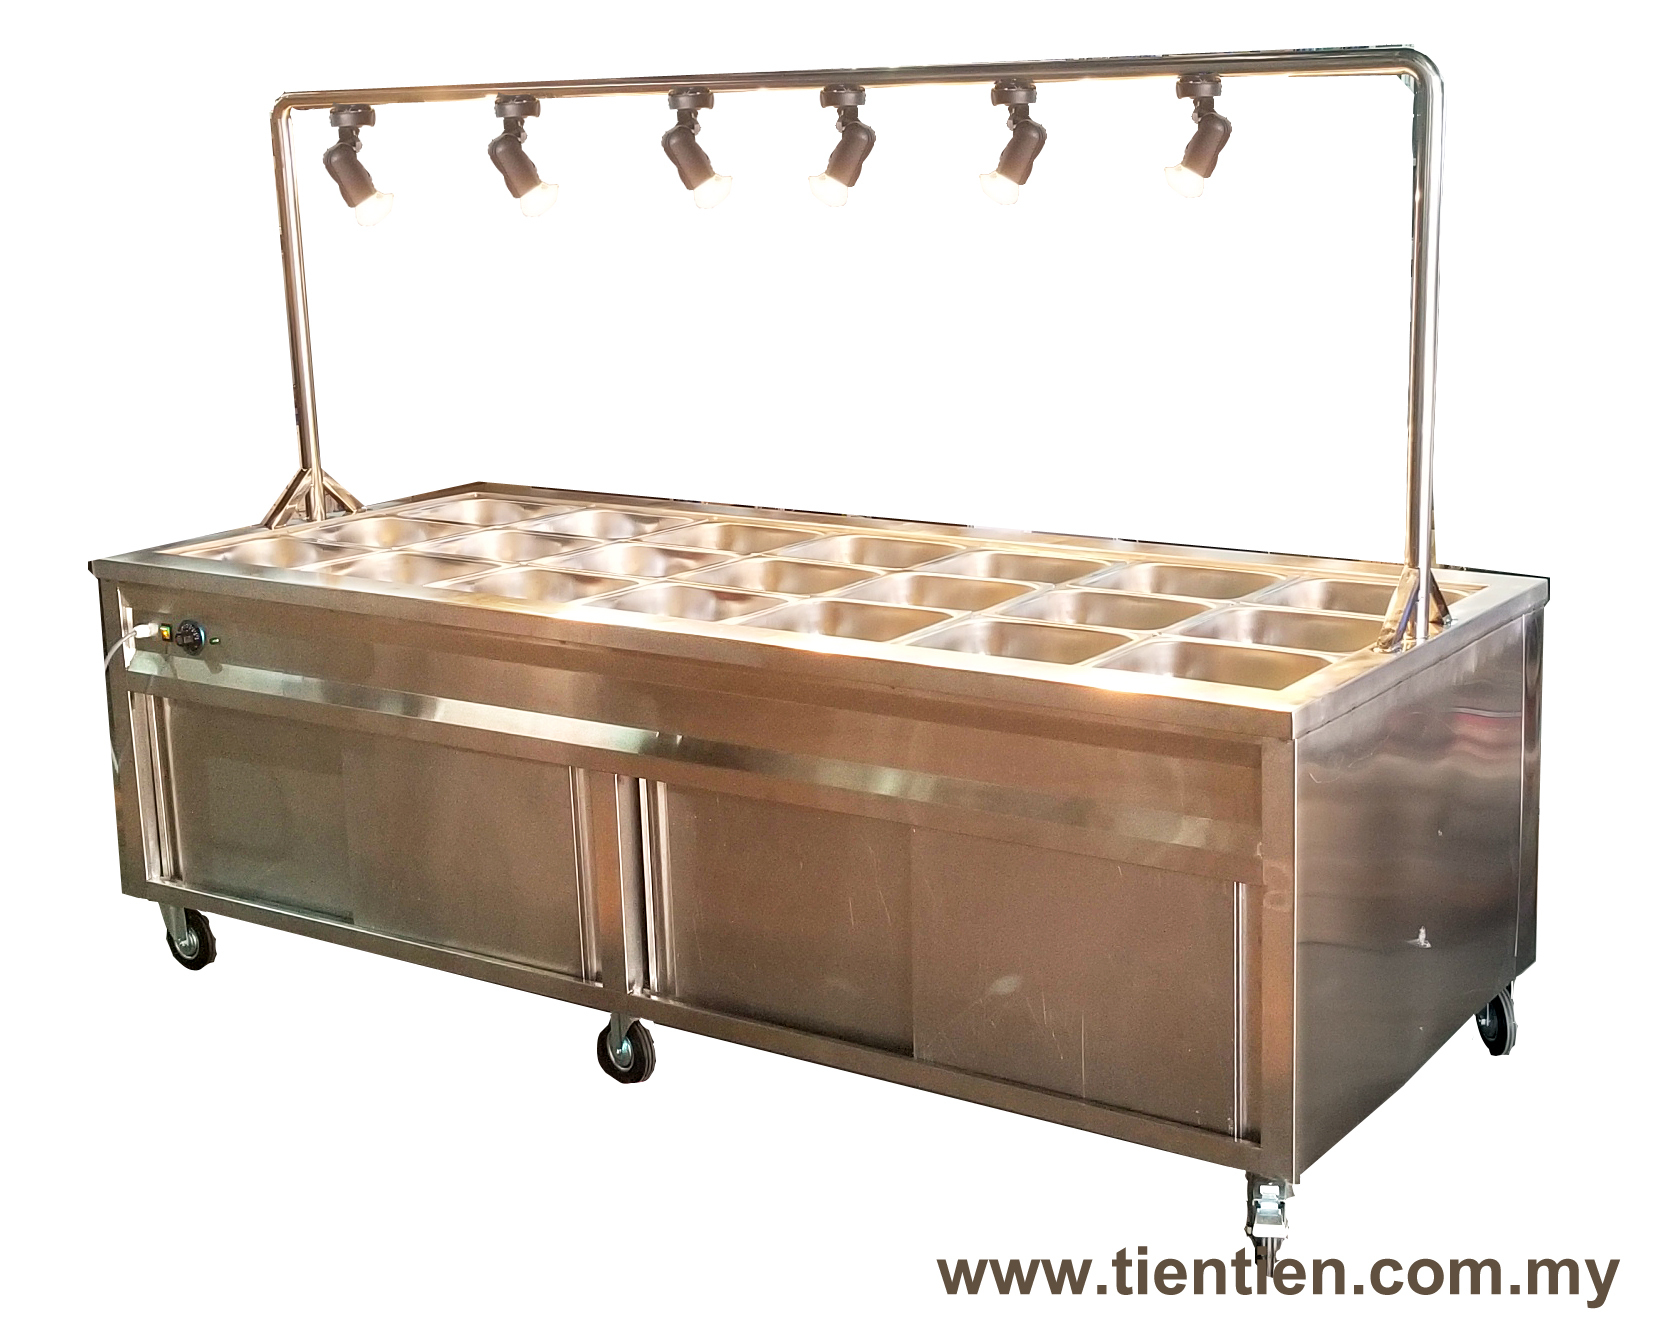 bain marie cabinet 8ft with lightsb.jpg